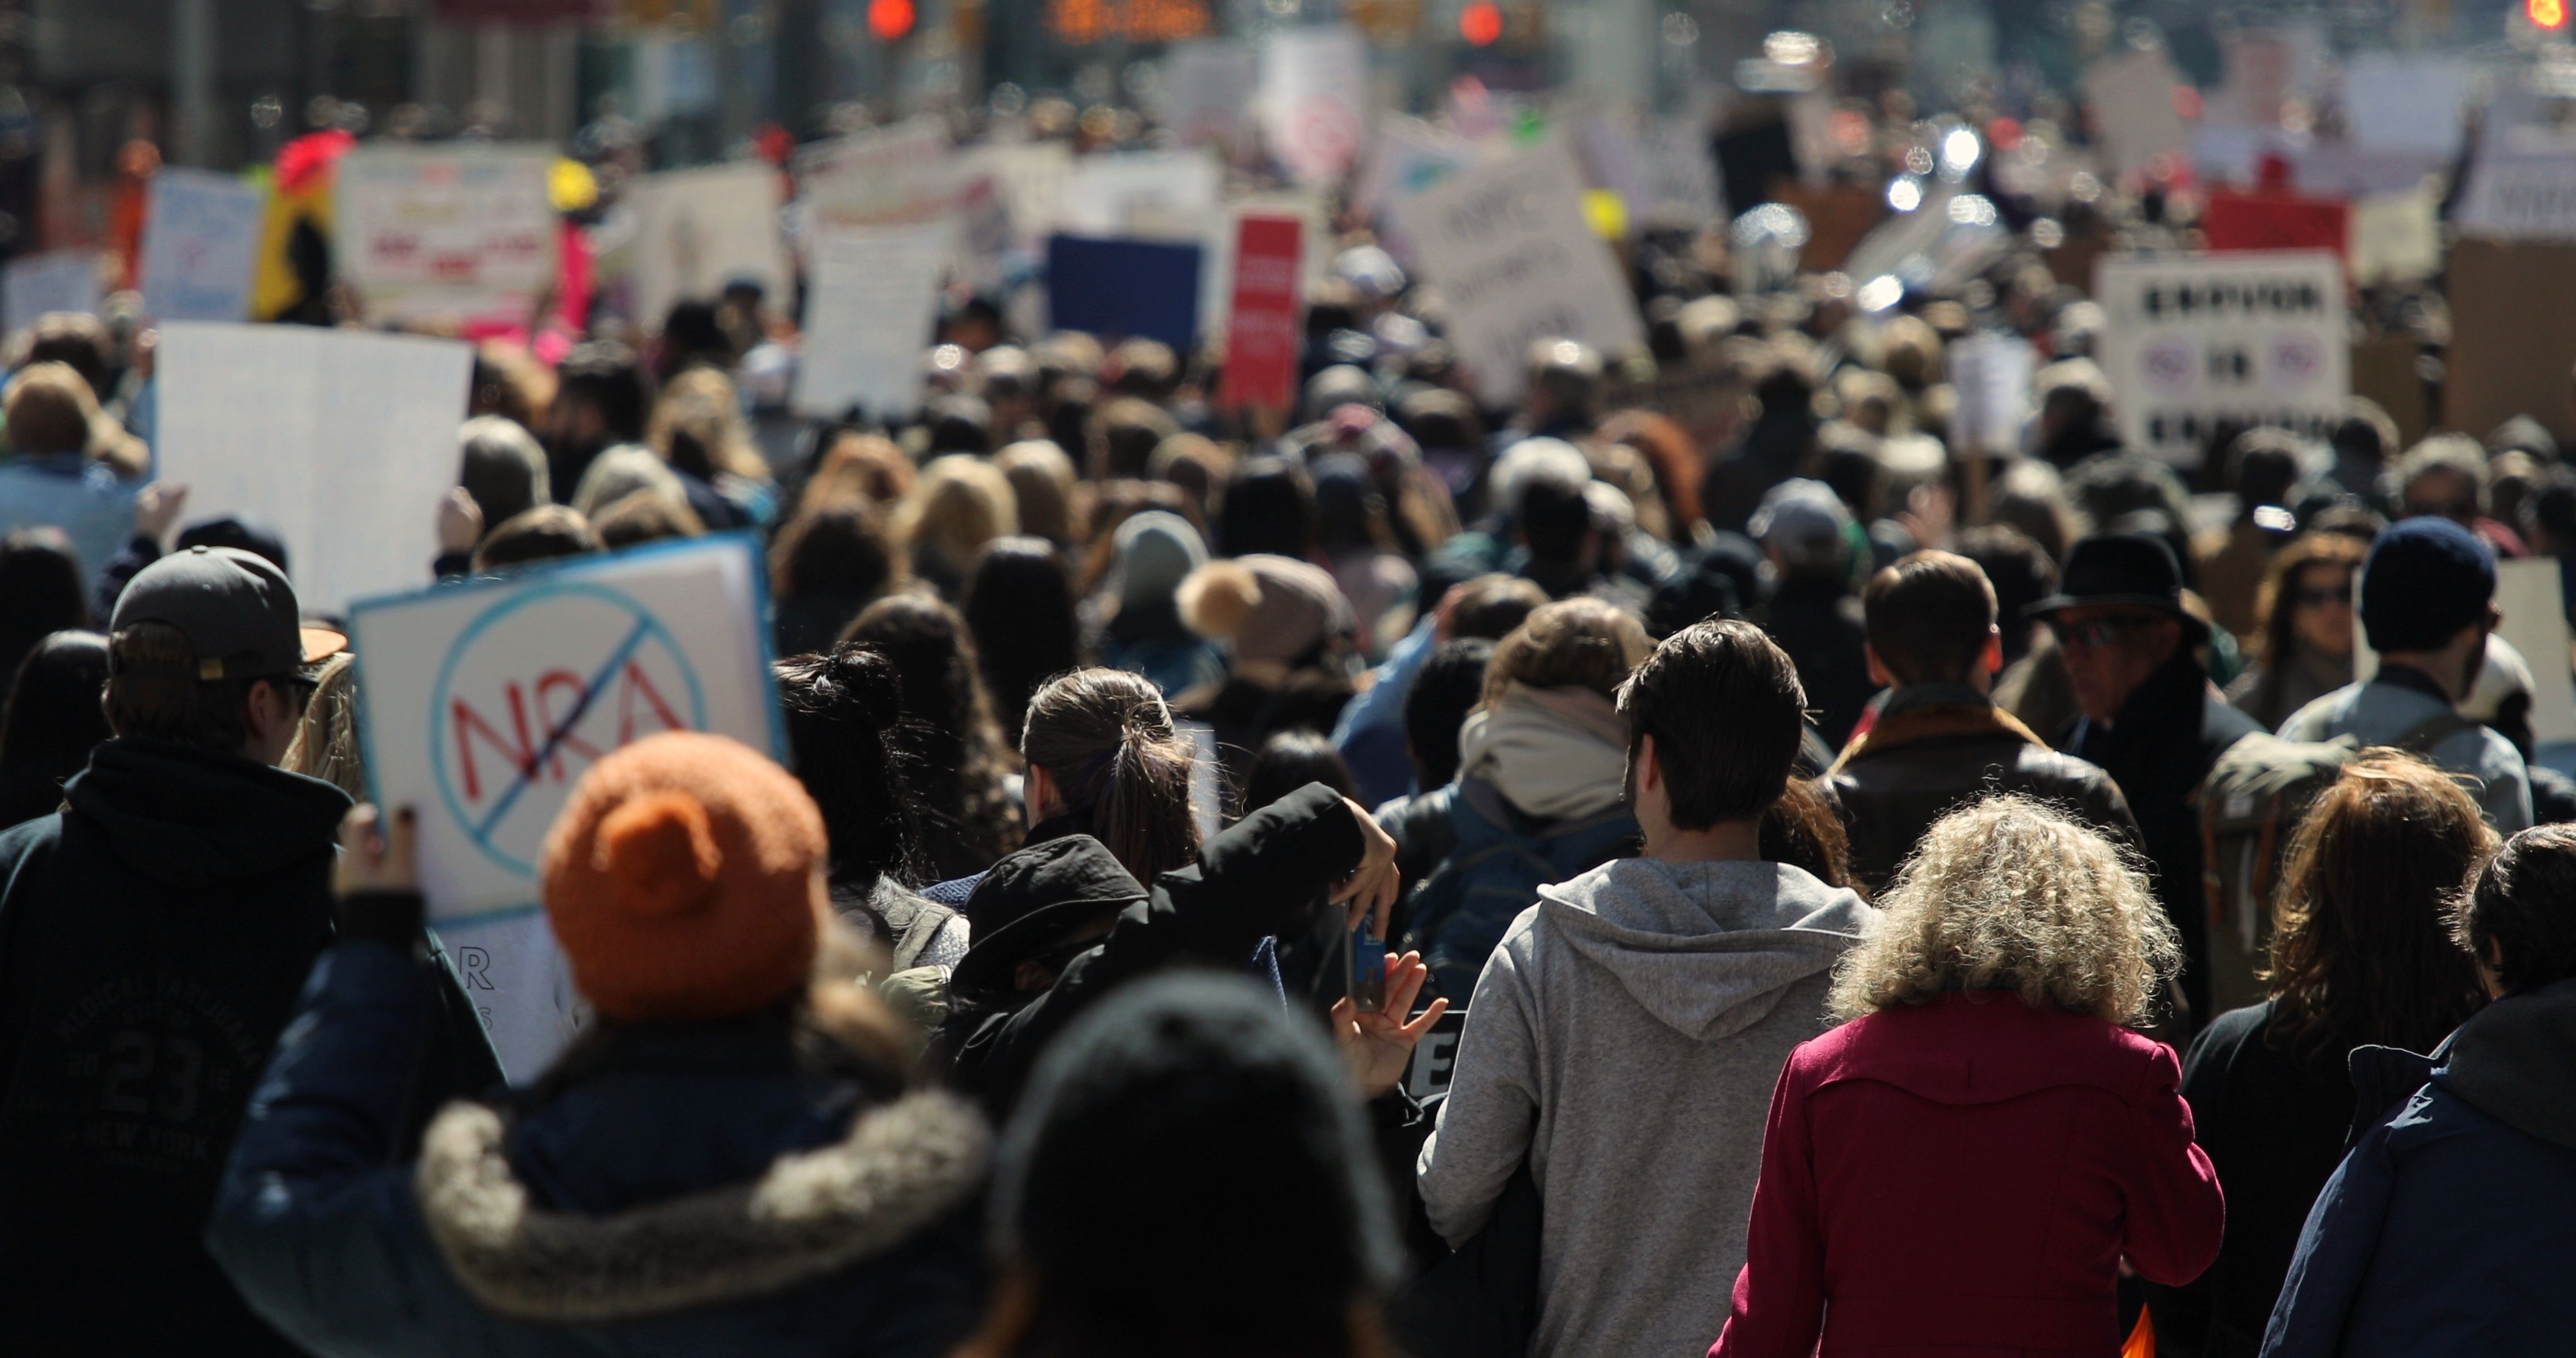 March Of Our Lives Protest In New York City 2018 Stock Footage Protest York March Lives York City New York City City